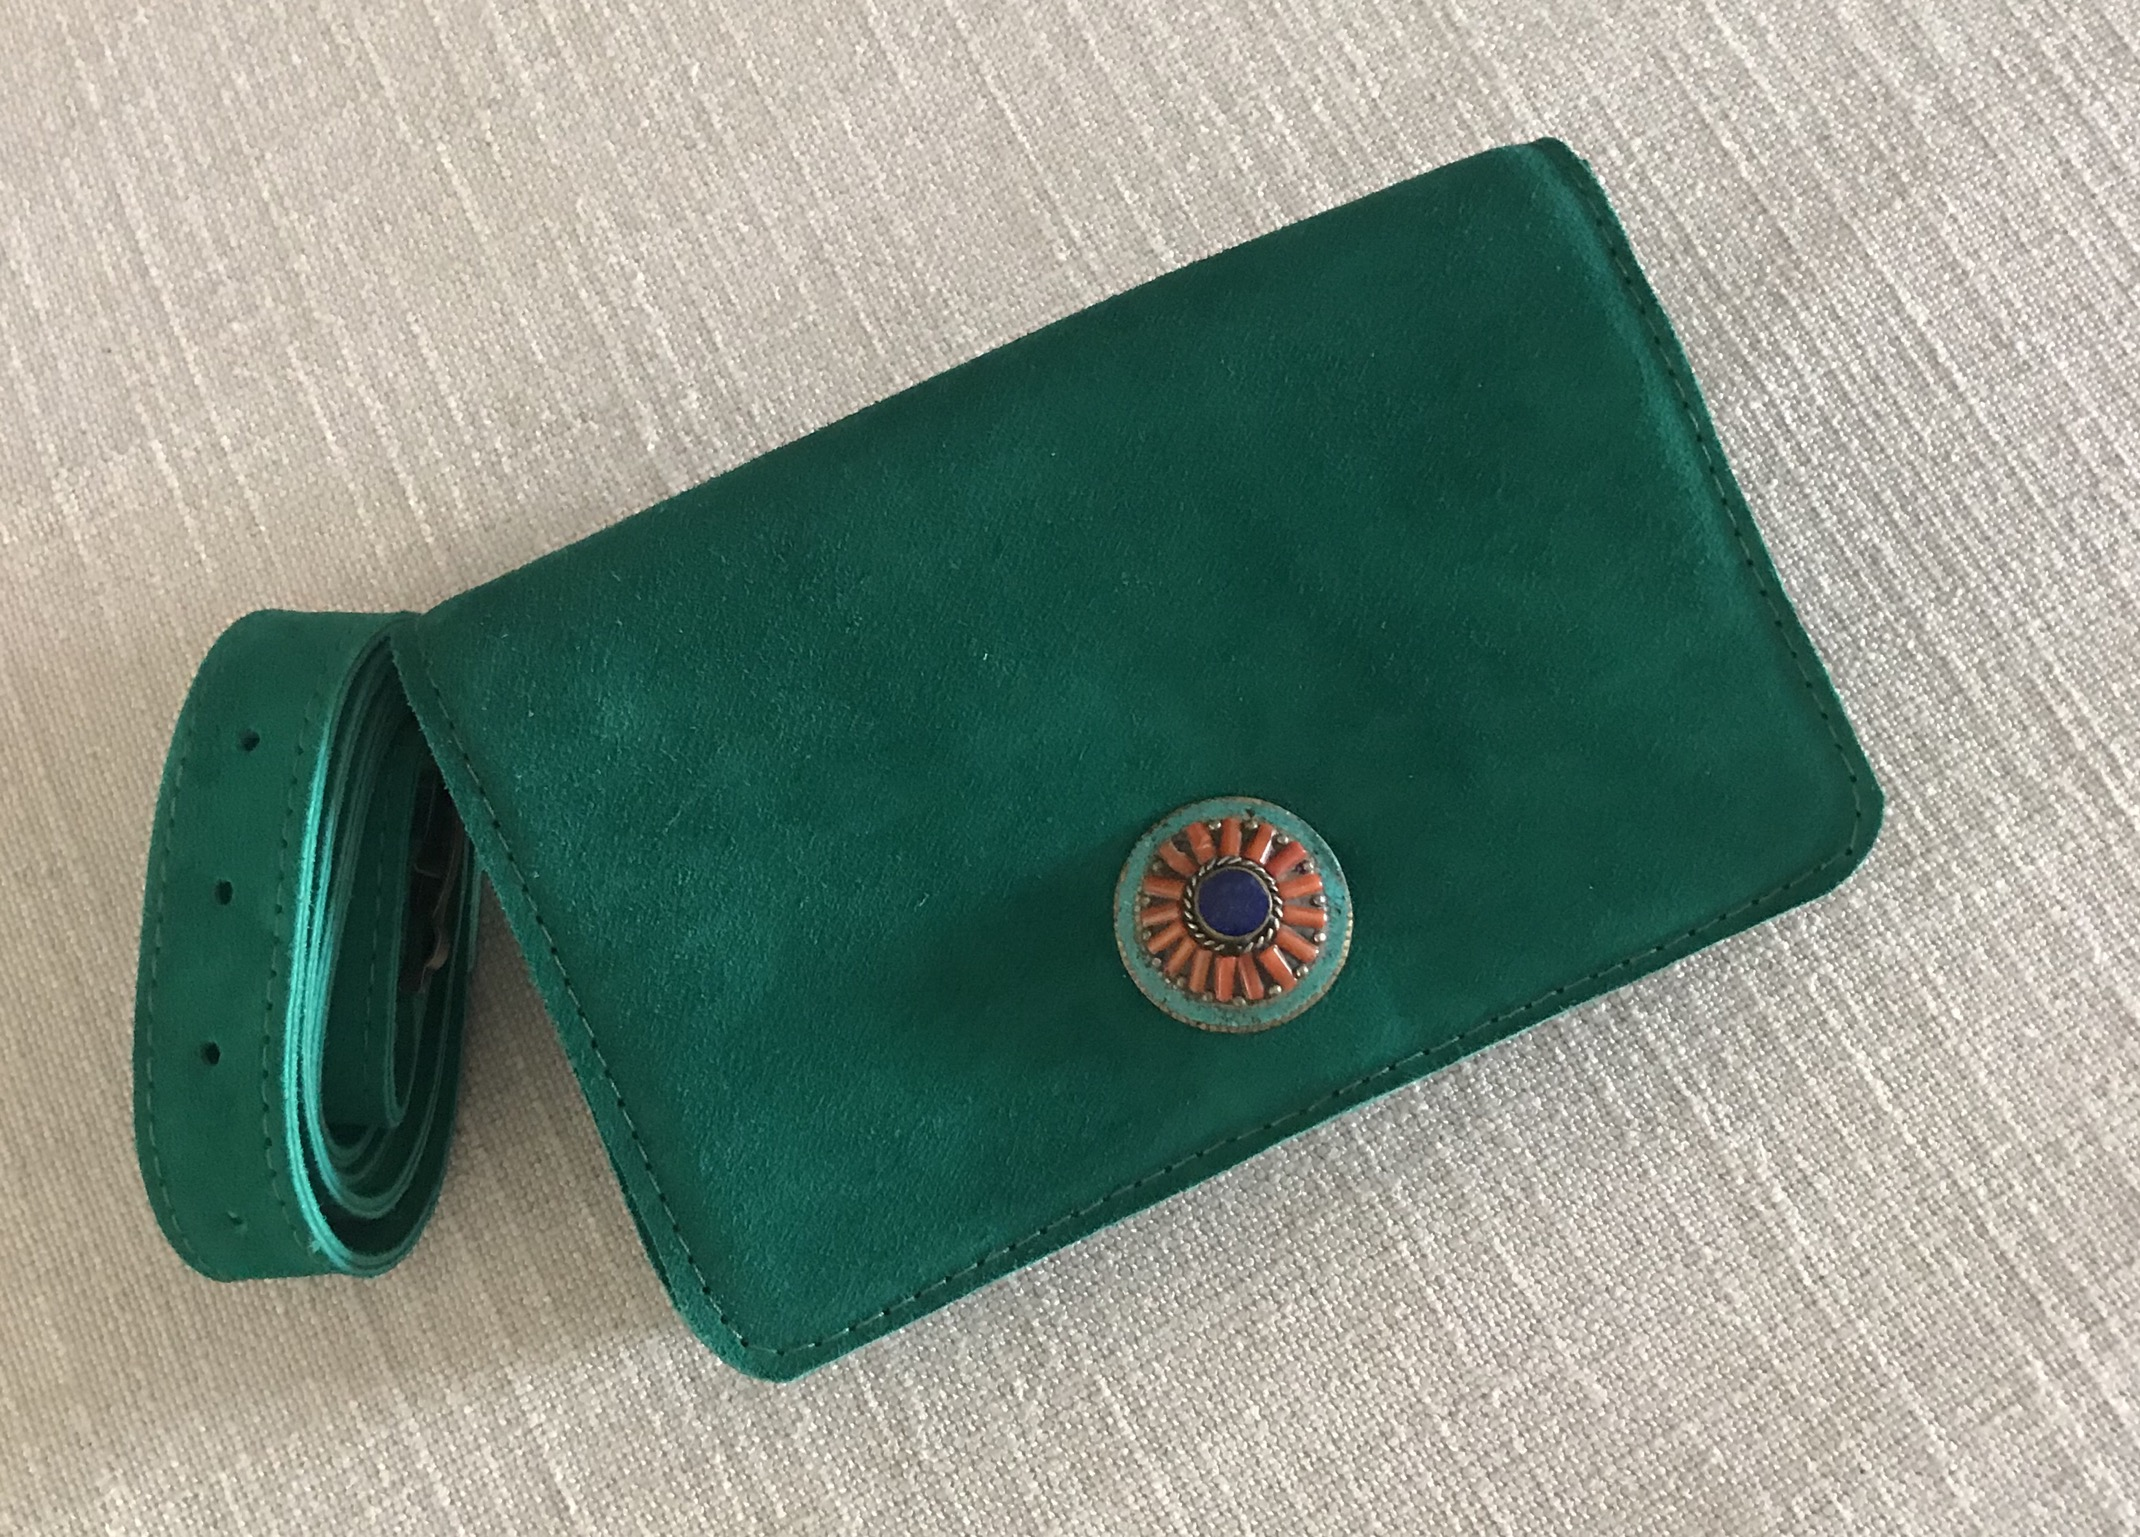 Belt Bag suede leather green with jewelry